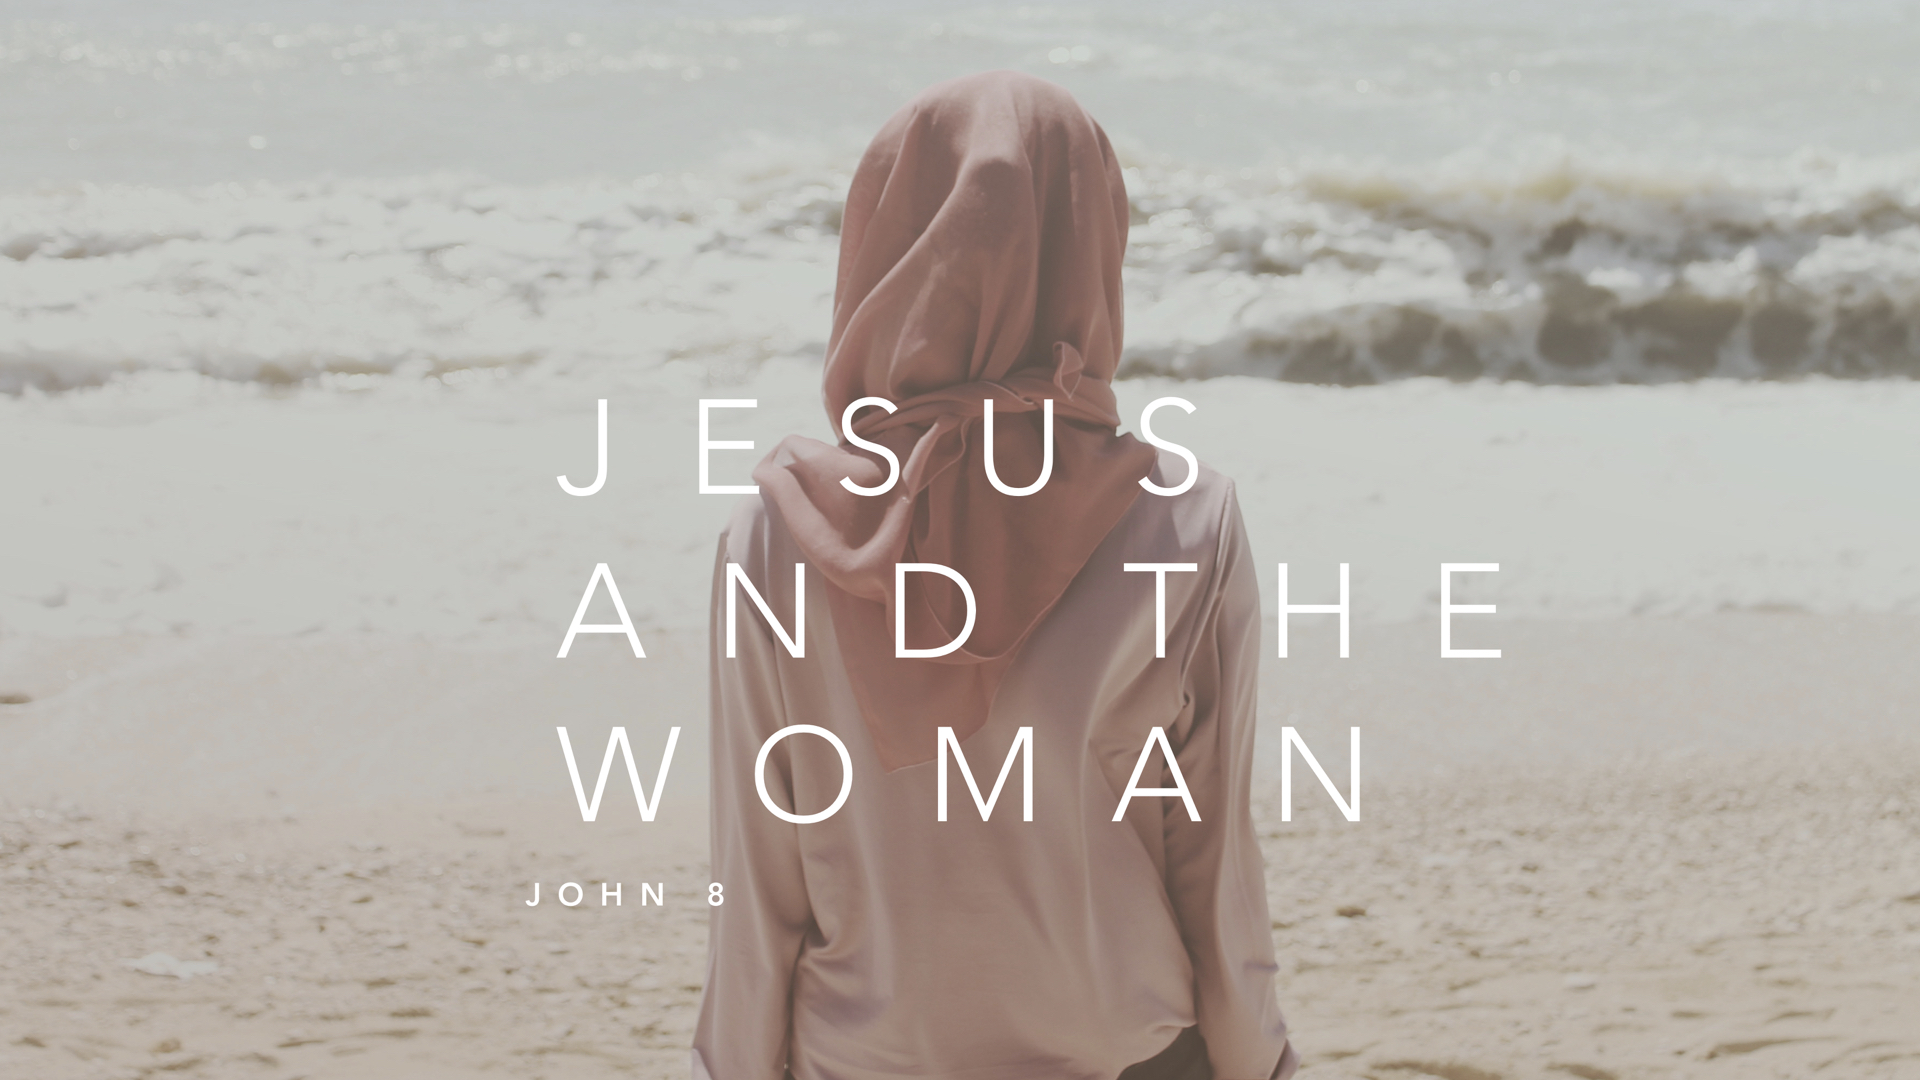 message - jesus and the woman.001.jpeg